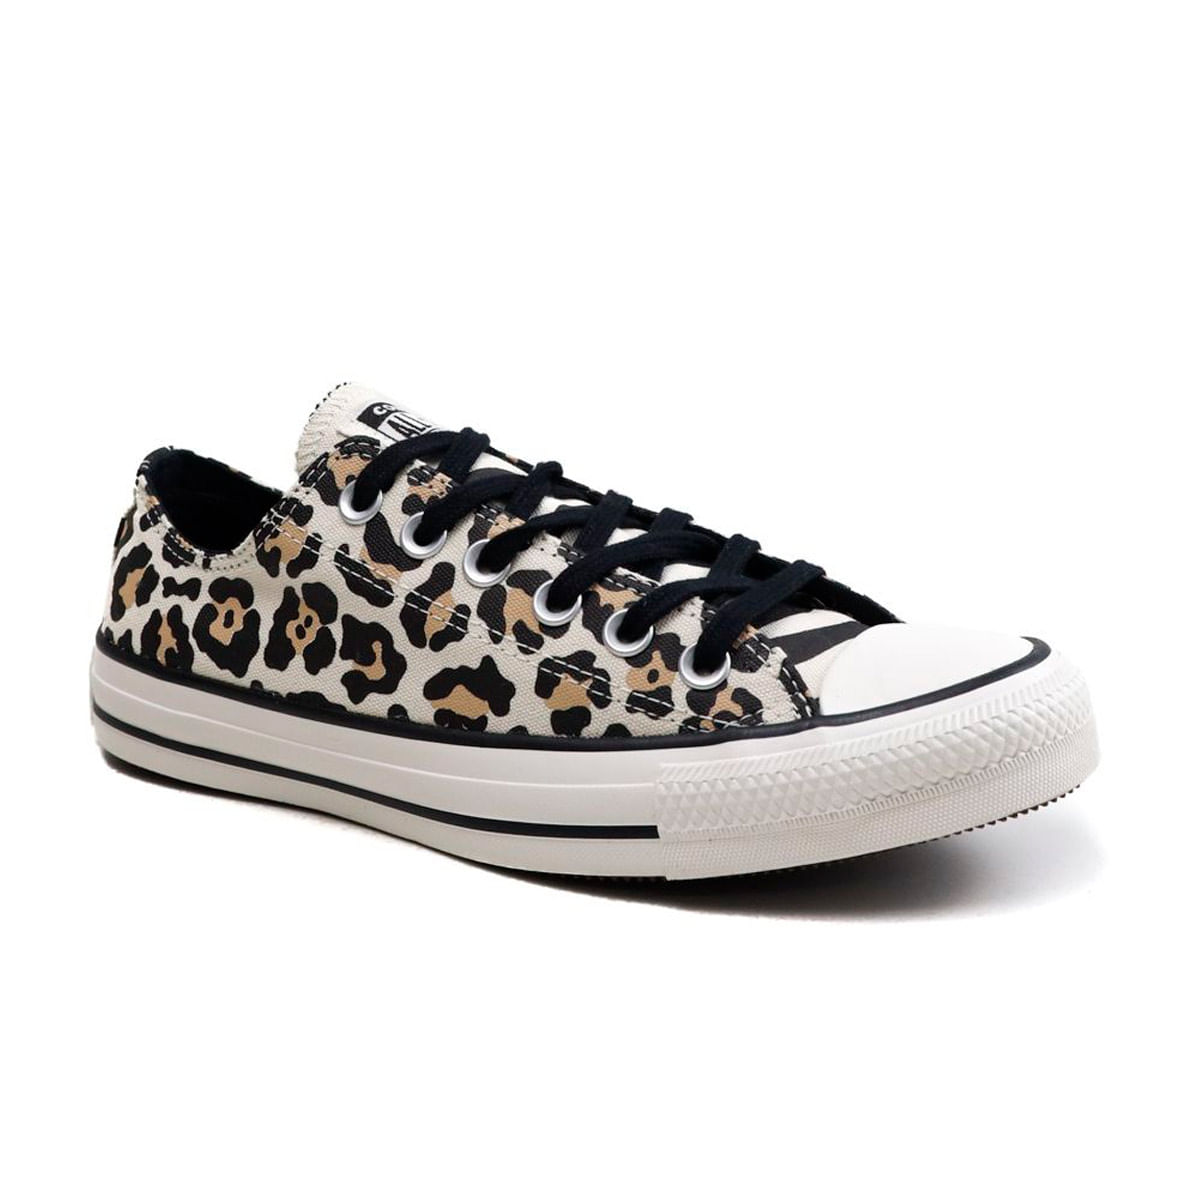 Tenis-Converse-All-Star-Low-Leopard--33-ao-39--CT1308--VER21-